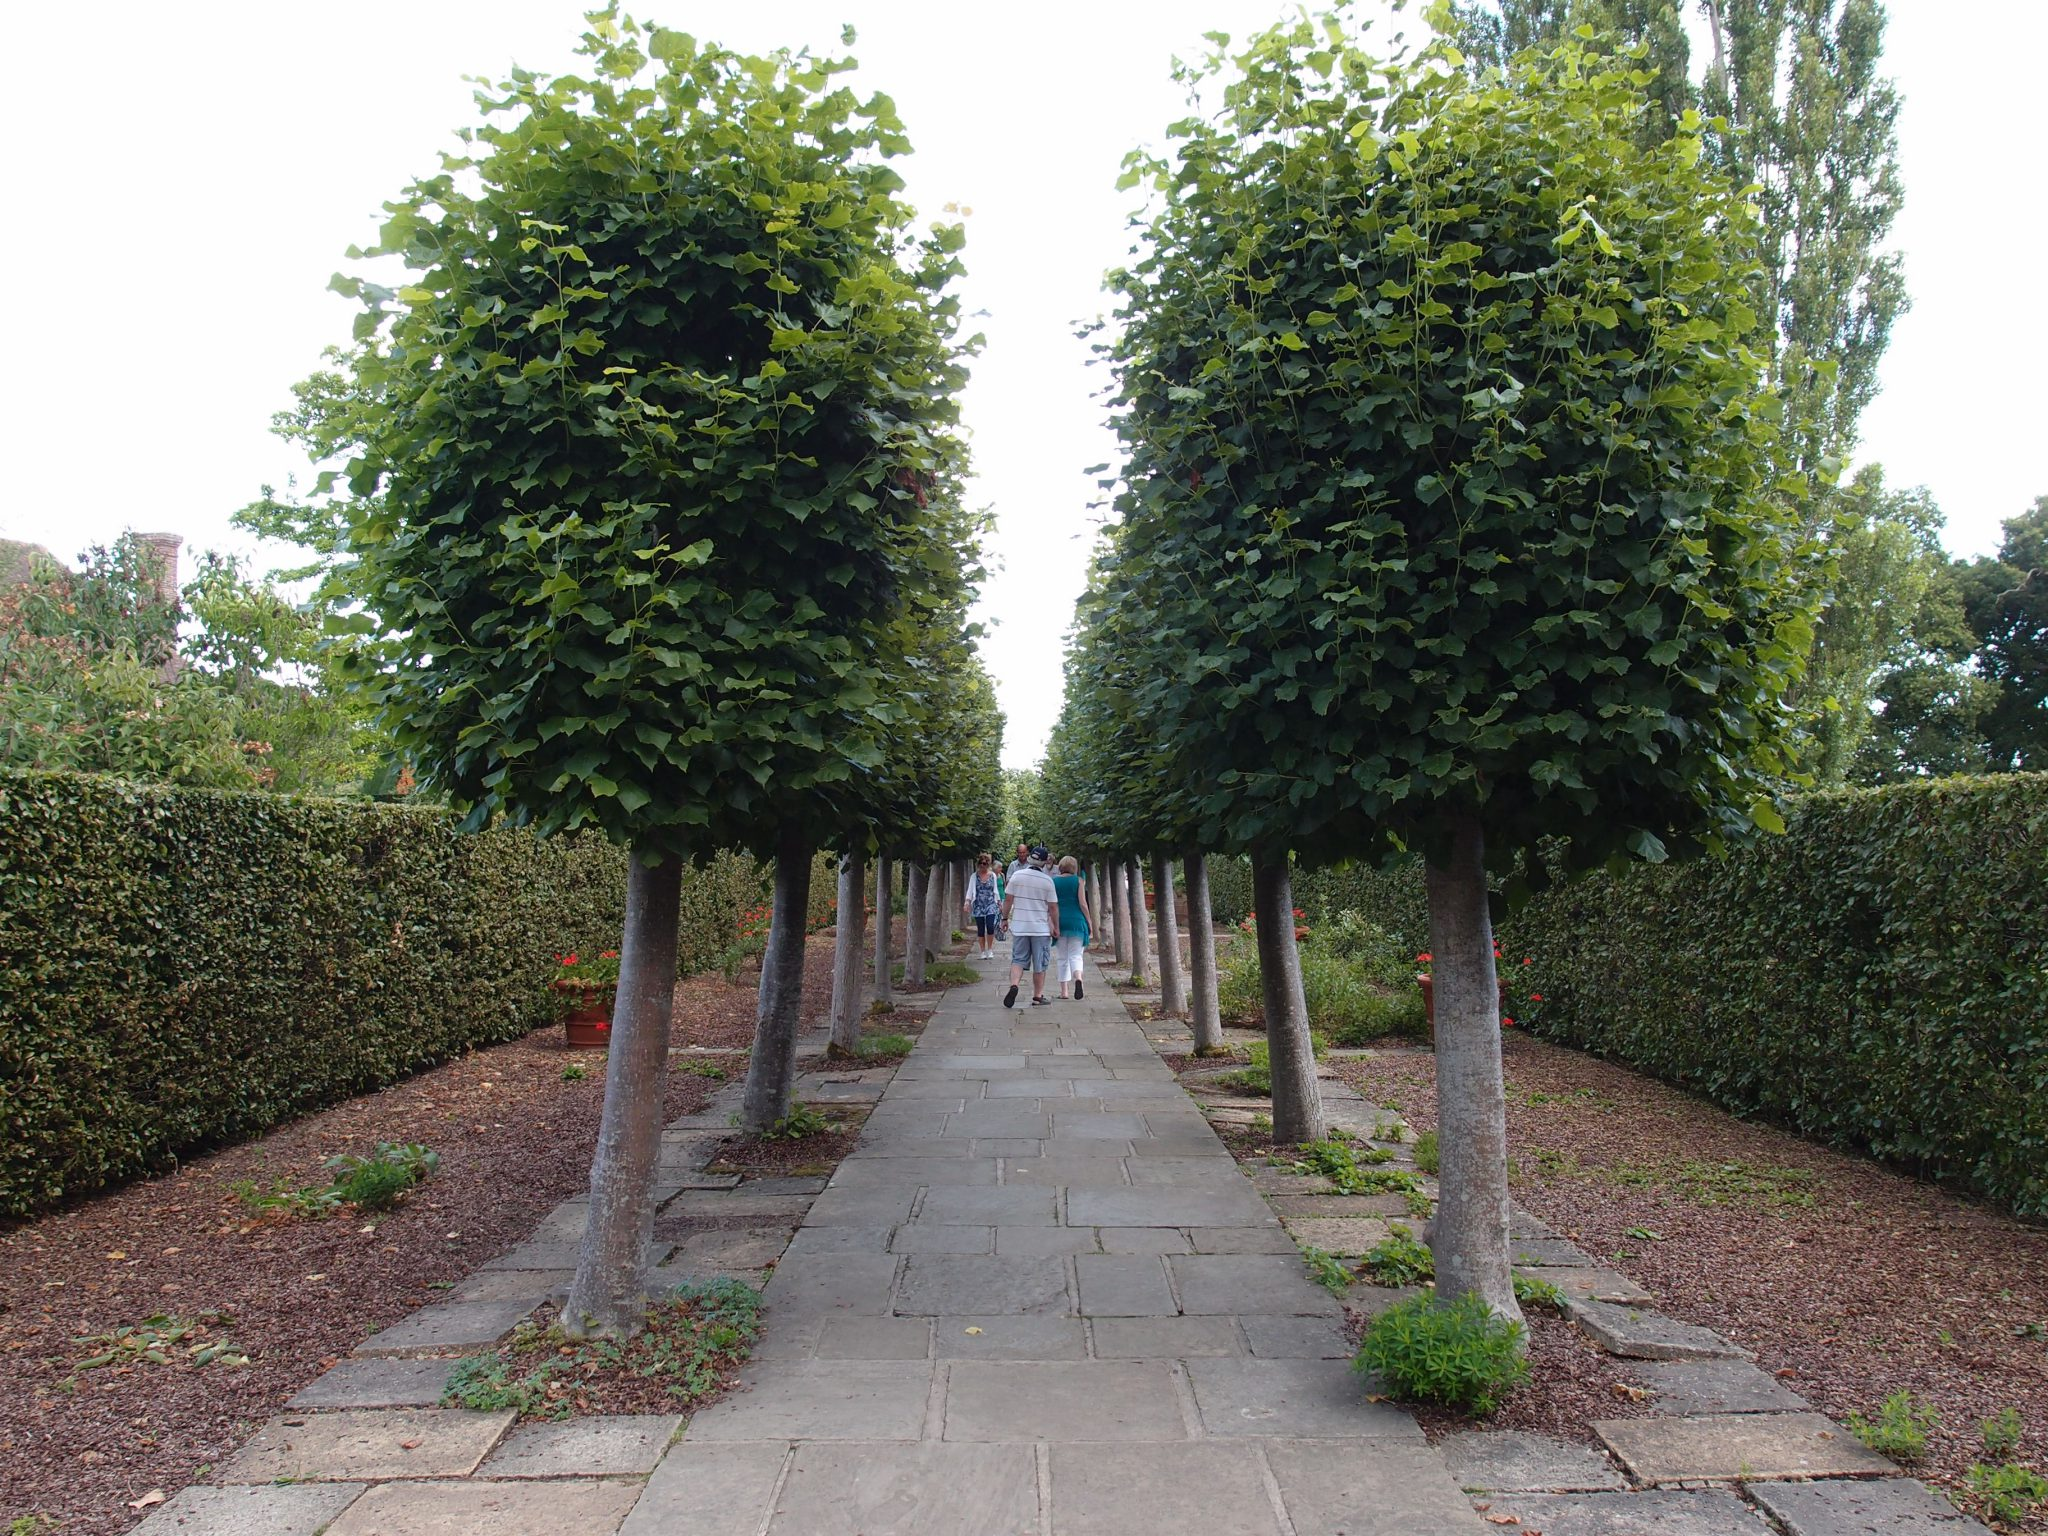 After the Cottage Garden, we entered the Lime Walk, in the Spring Garden. Since the 1930s, when Harold Nicolson designed the Lime Walk, the trees have been replaced two times.